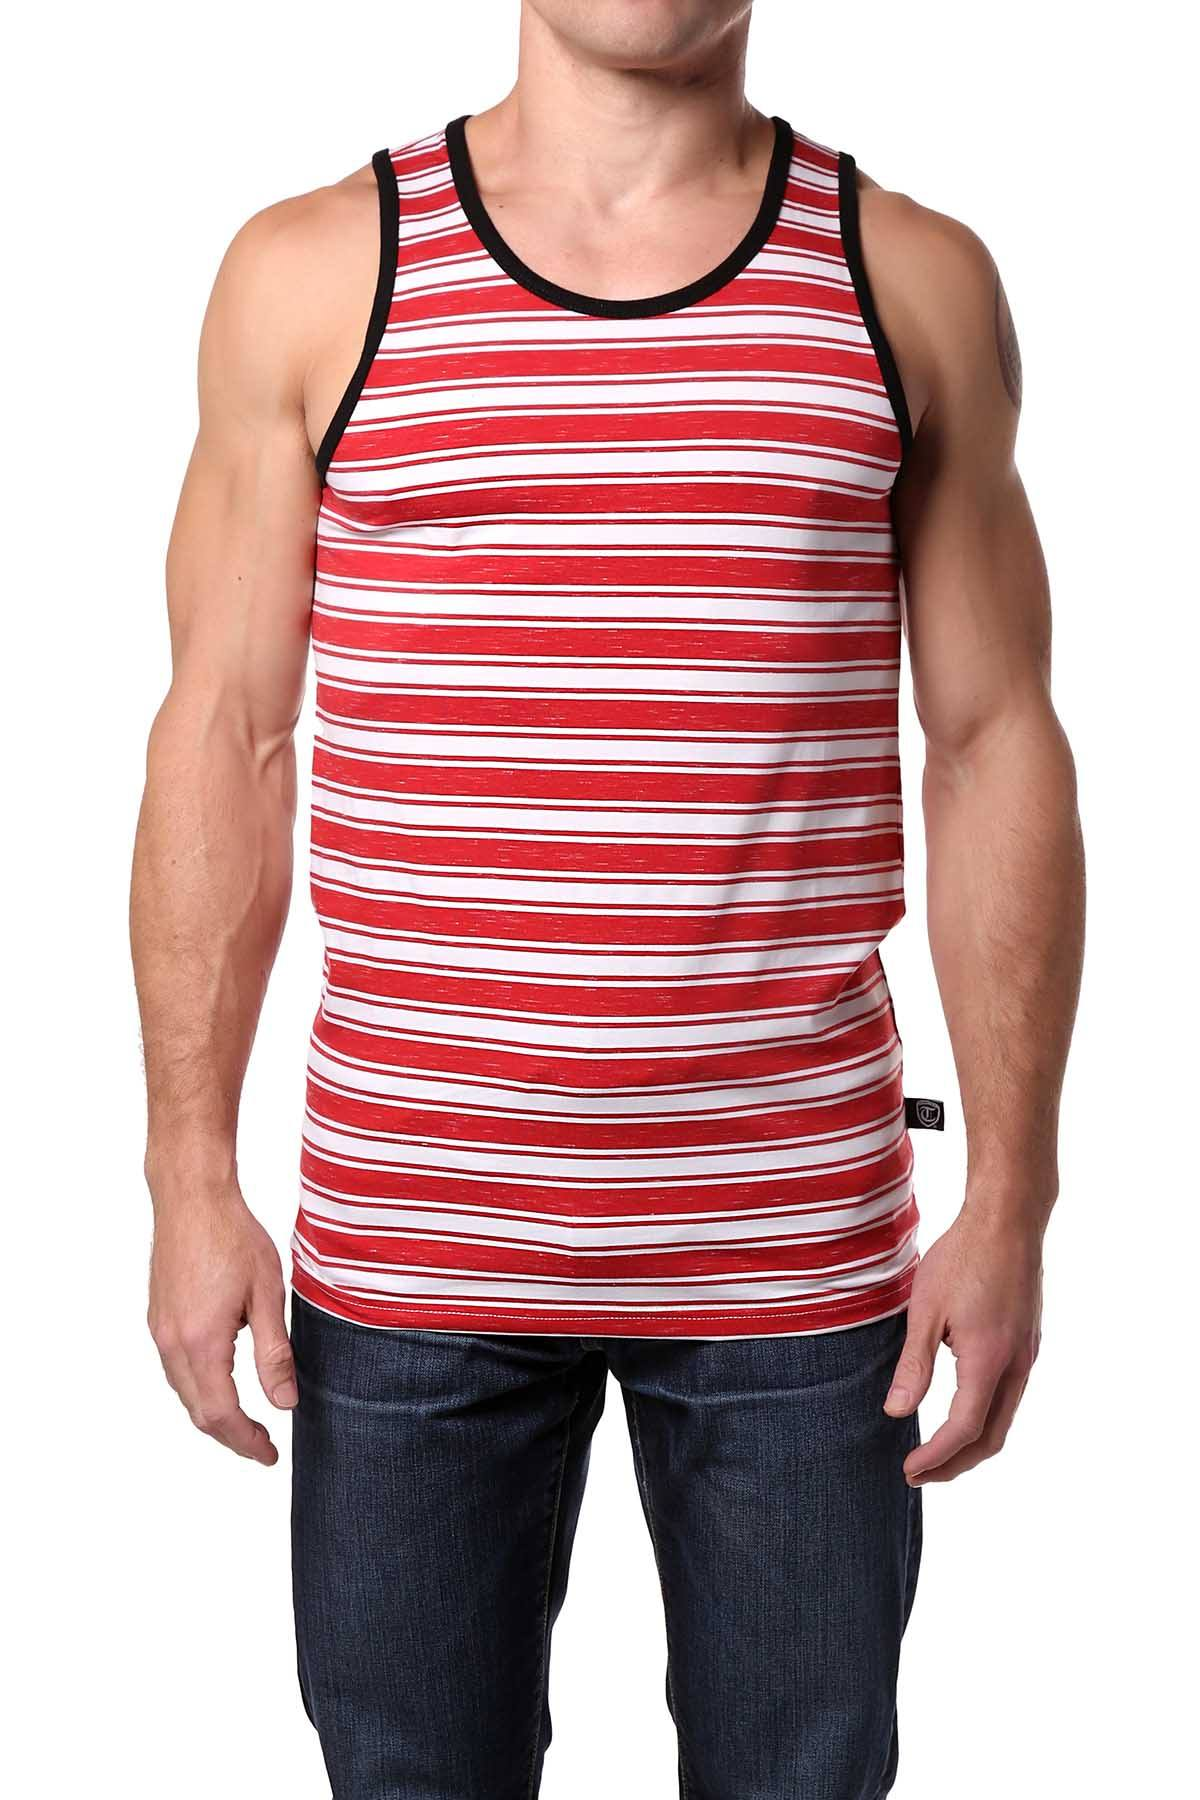 Timoteo Red Striped Oceanside Tank